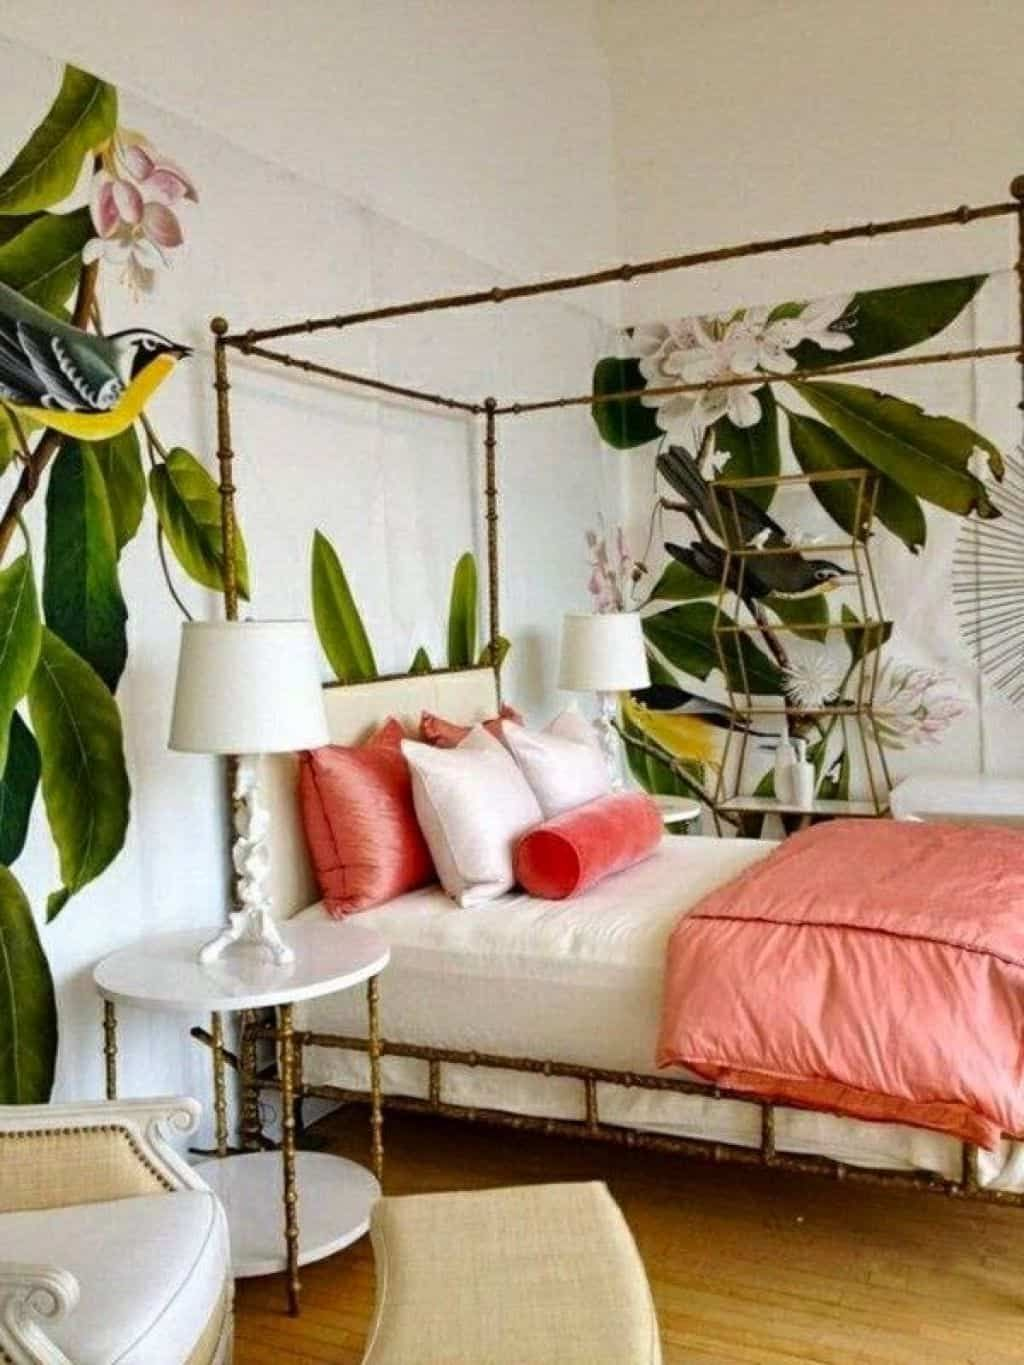 Charmant Making A Paradise With Tropical Bedroom Theme